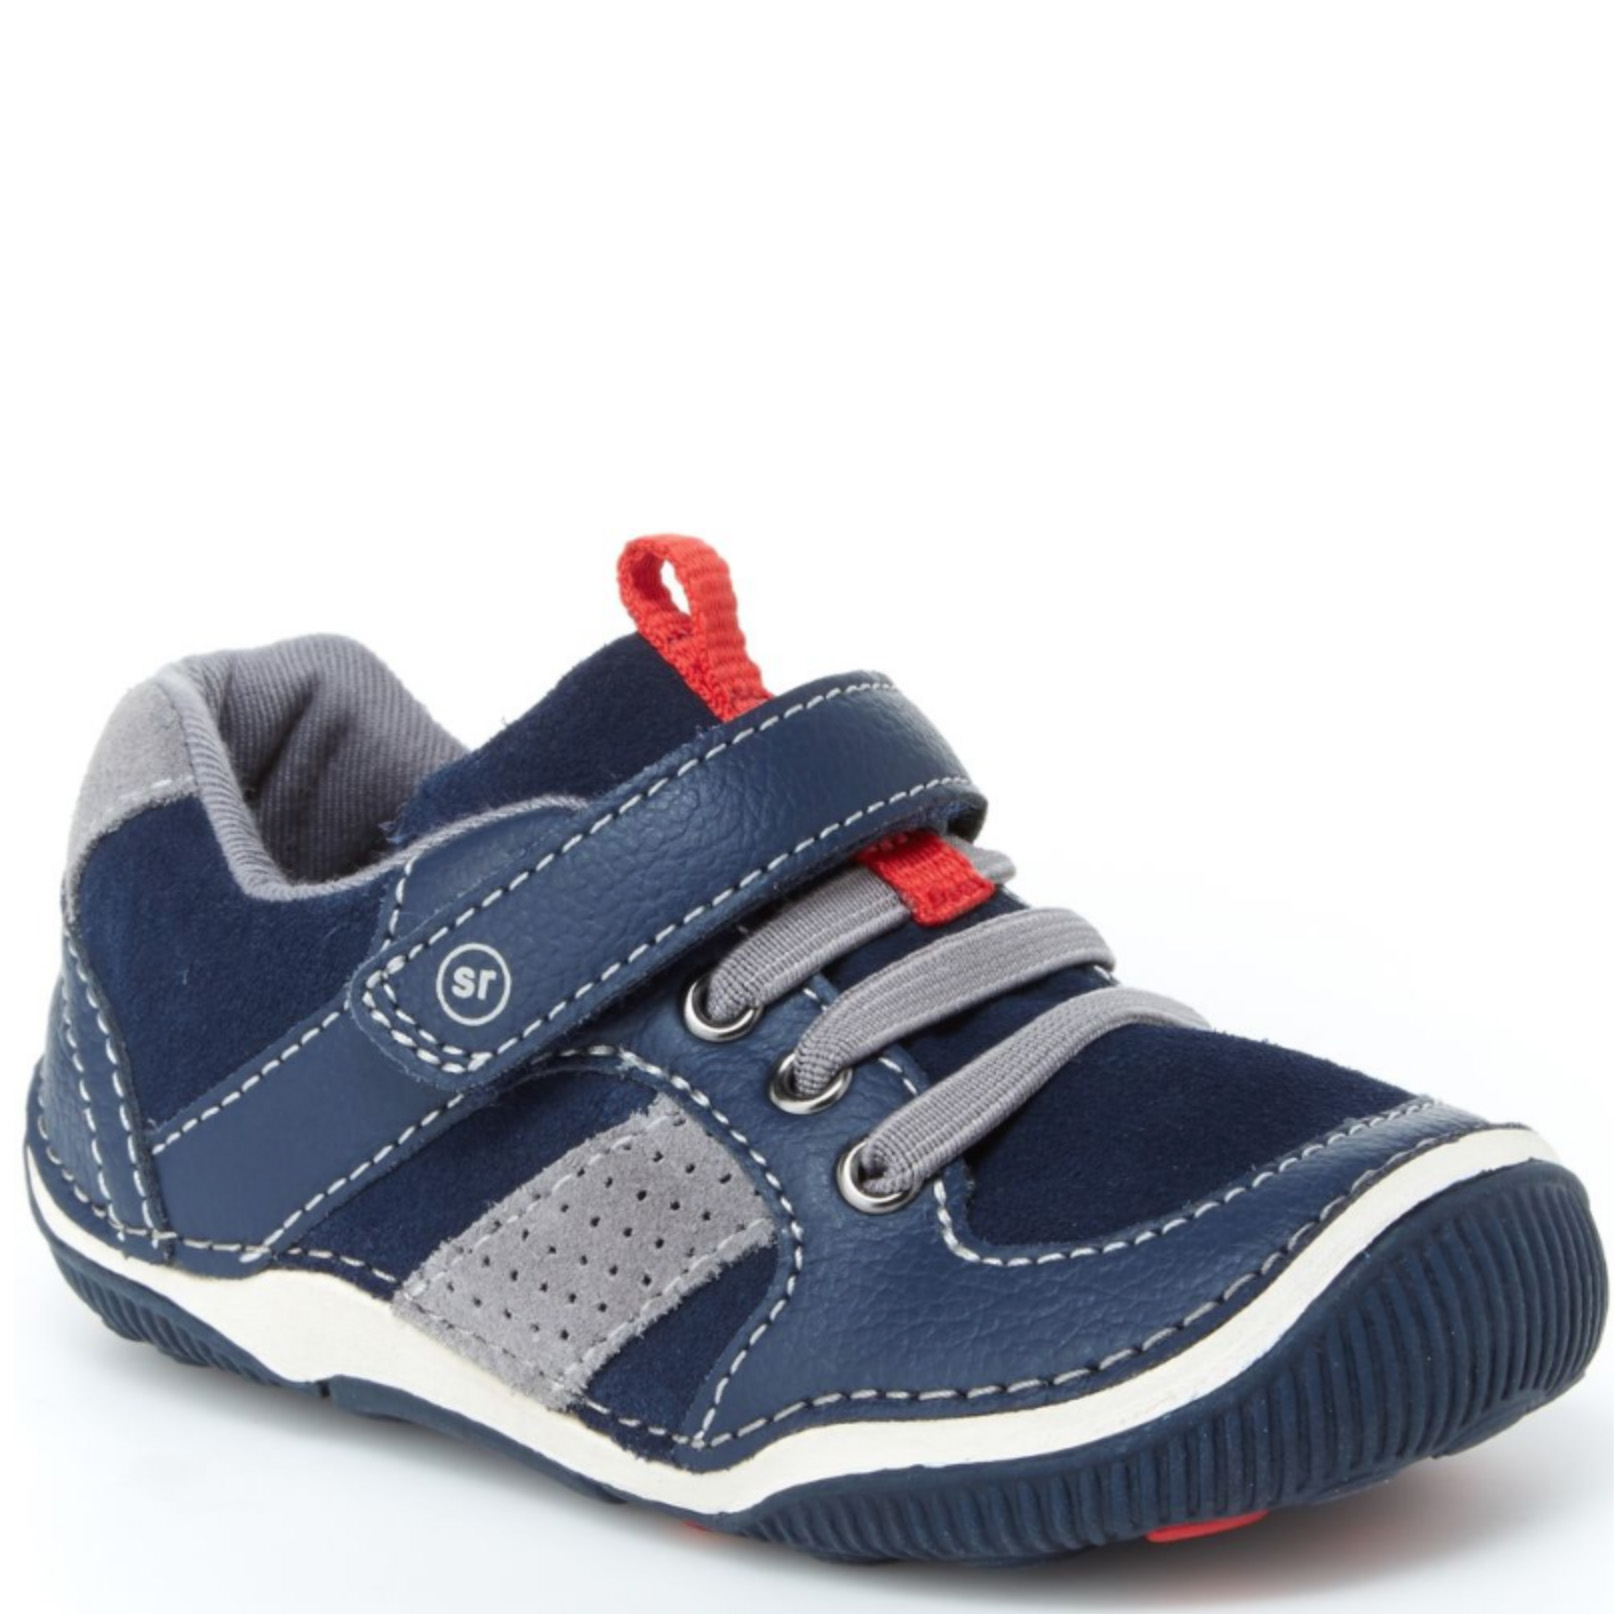 Keen Shoes Toddler Boy